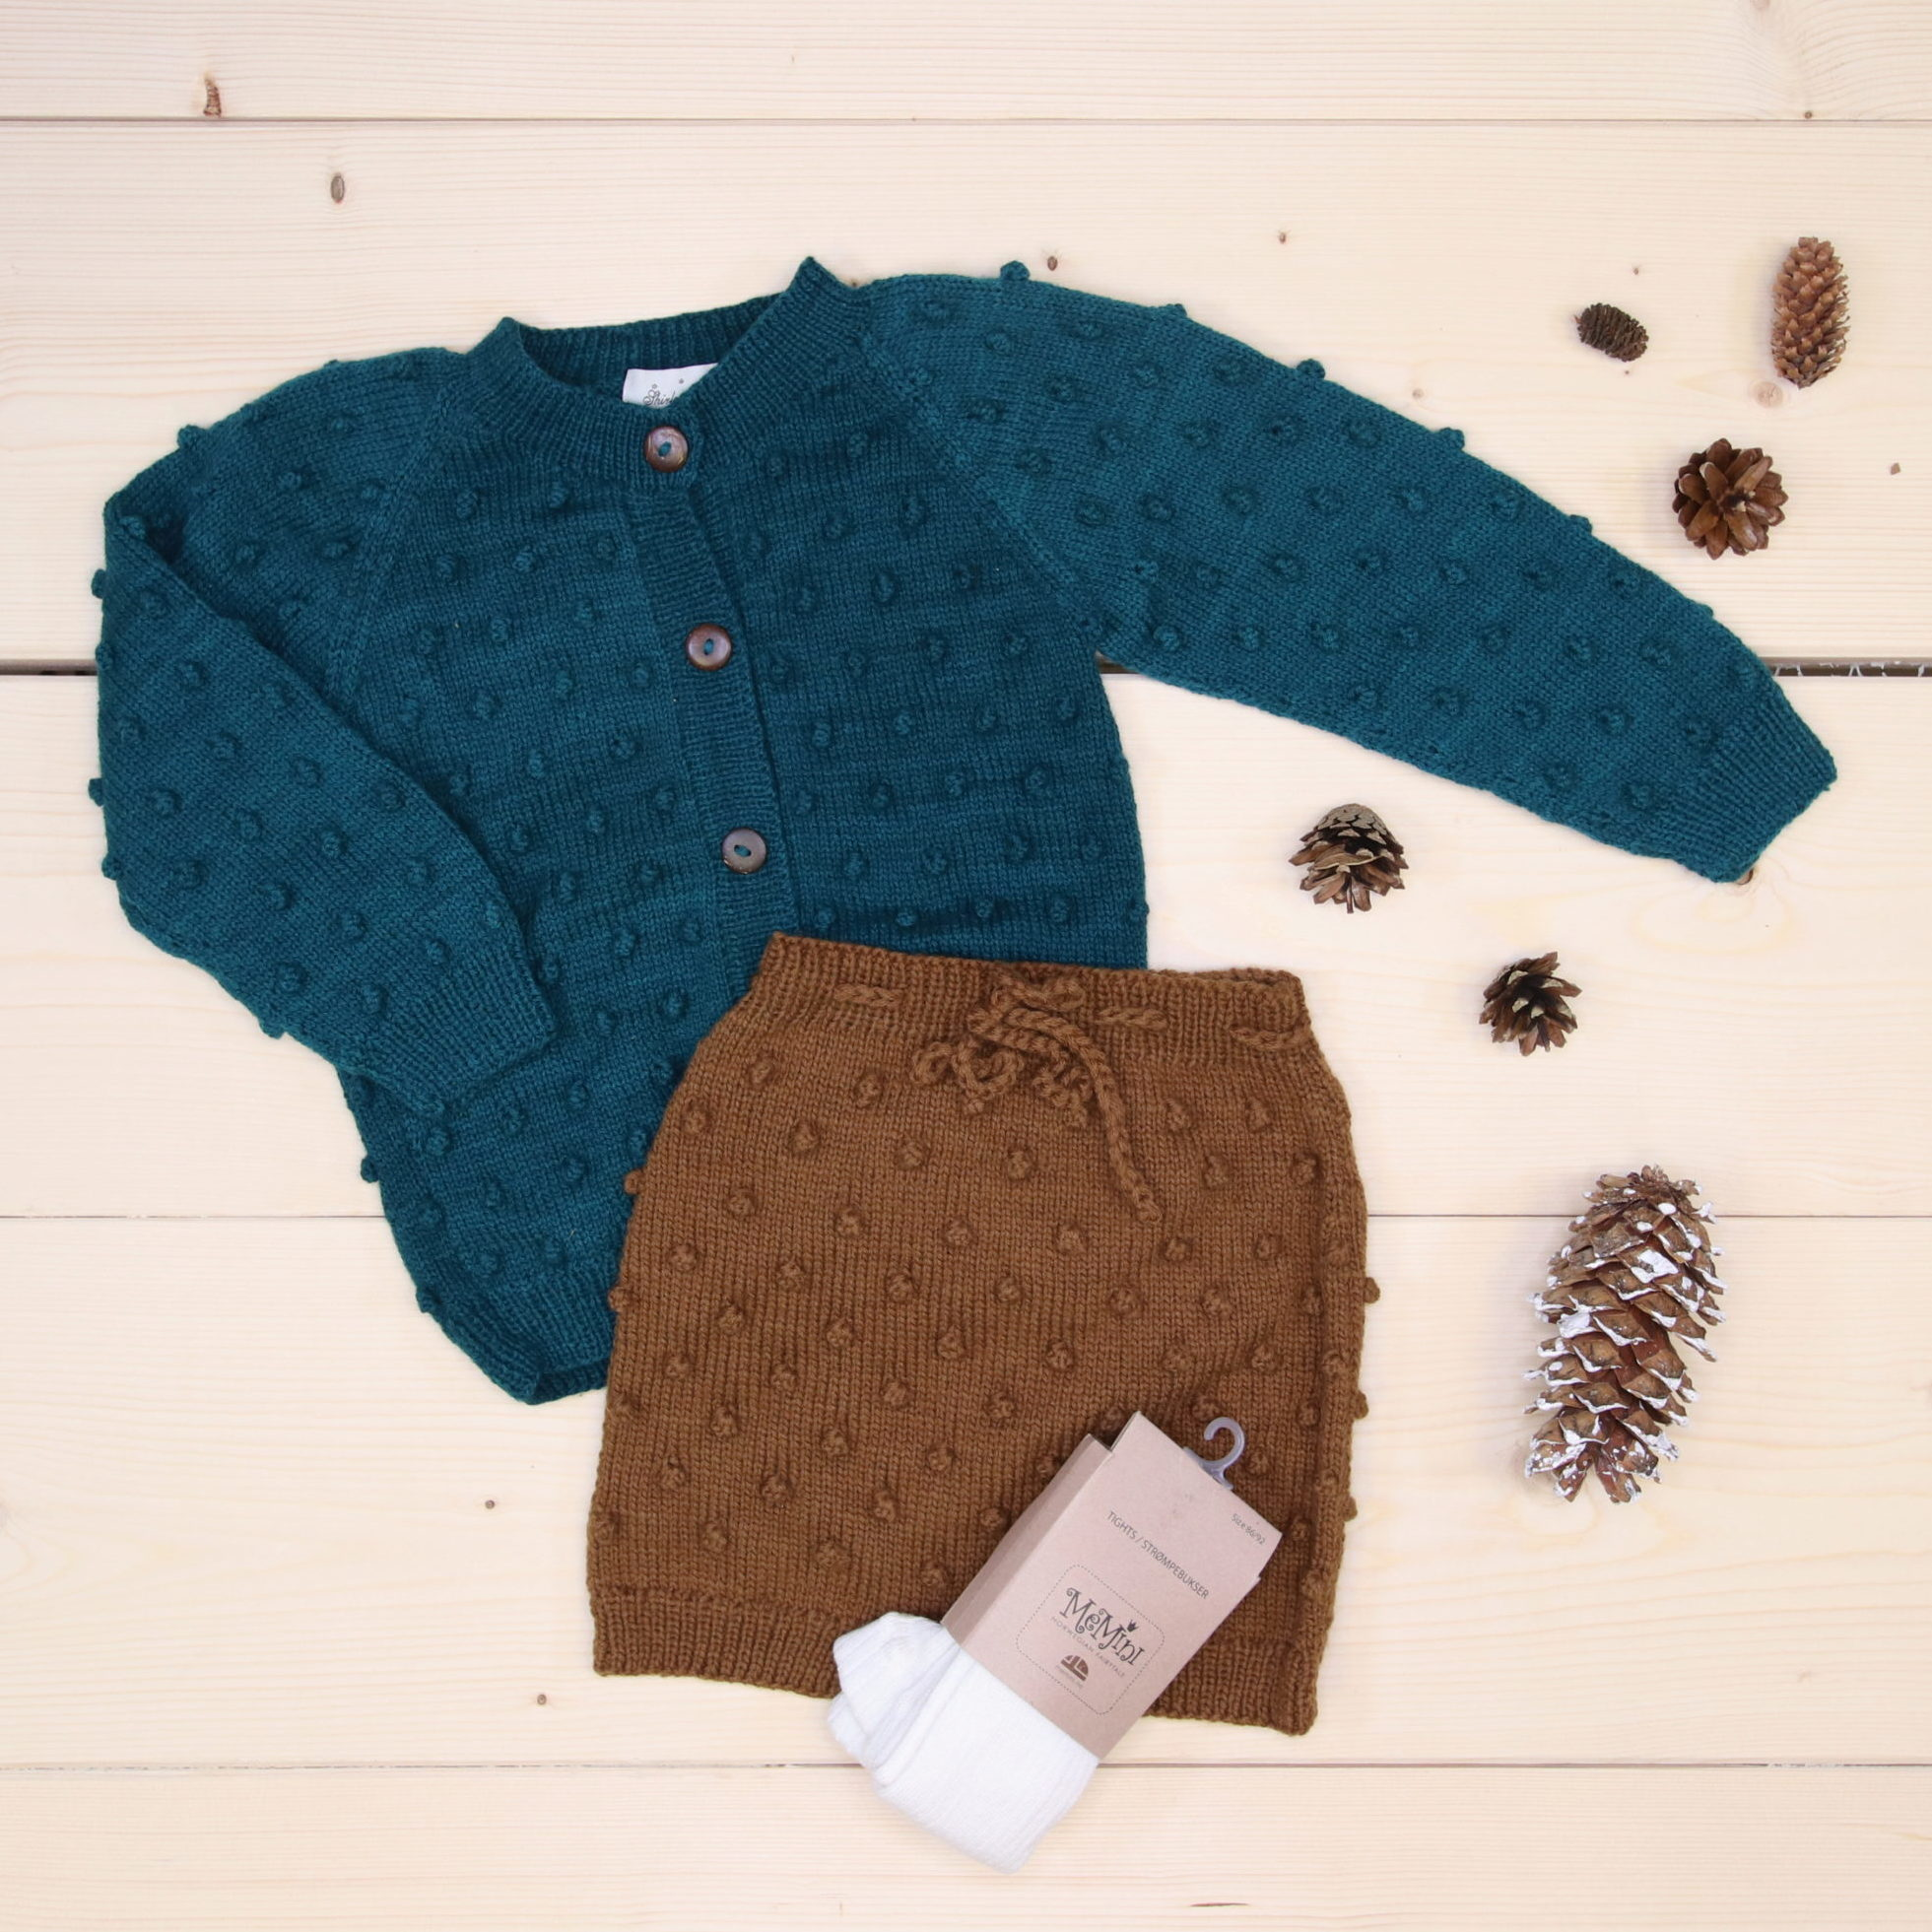 News from Shirley Bredal, Bubble cardigan and Bubble Shorts all made of wool, great for colder weather 🐑  @shirleybredal #shirleybredal  The color of the cardigan is more green than the picture shows.  Dette er Småpakke som vi forberedte for en gutt i stilen cute